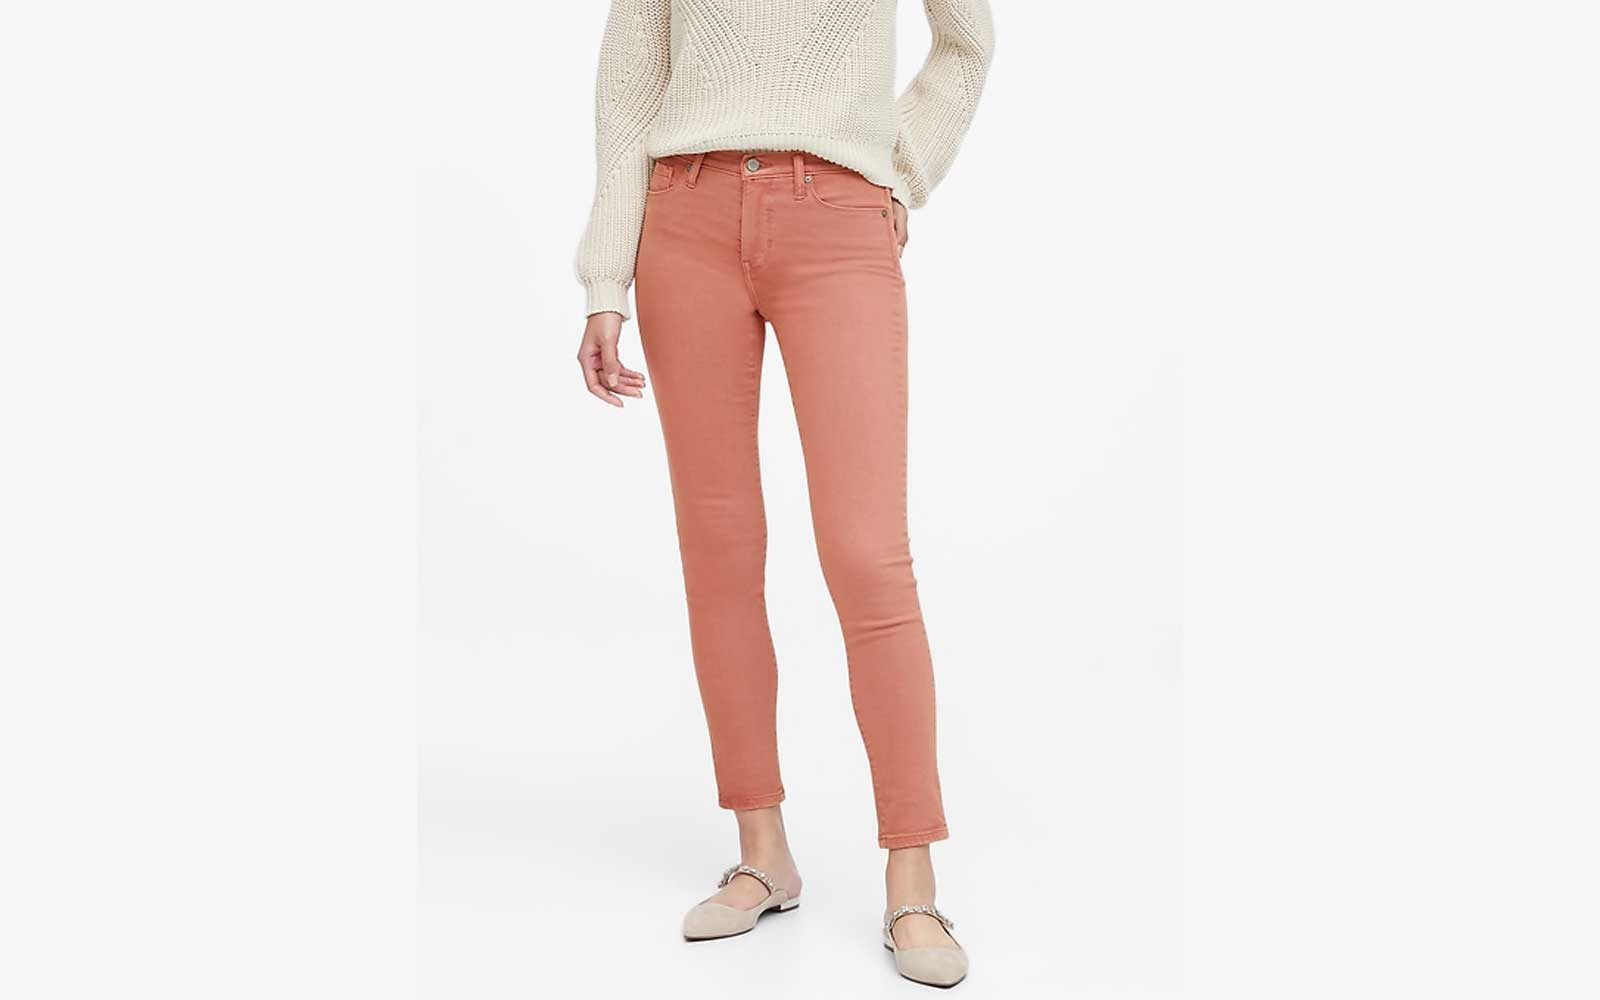 Peach colored mid rise skinny jeans from Banana Republic